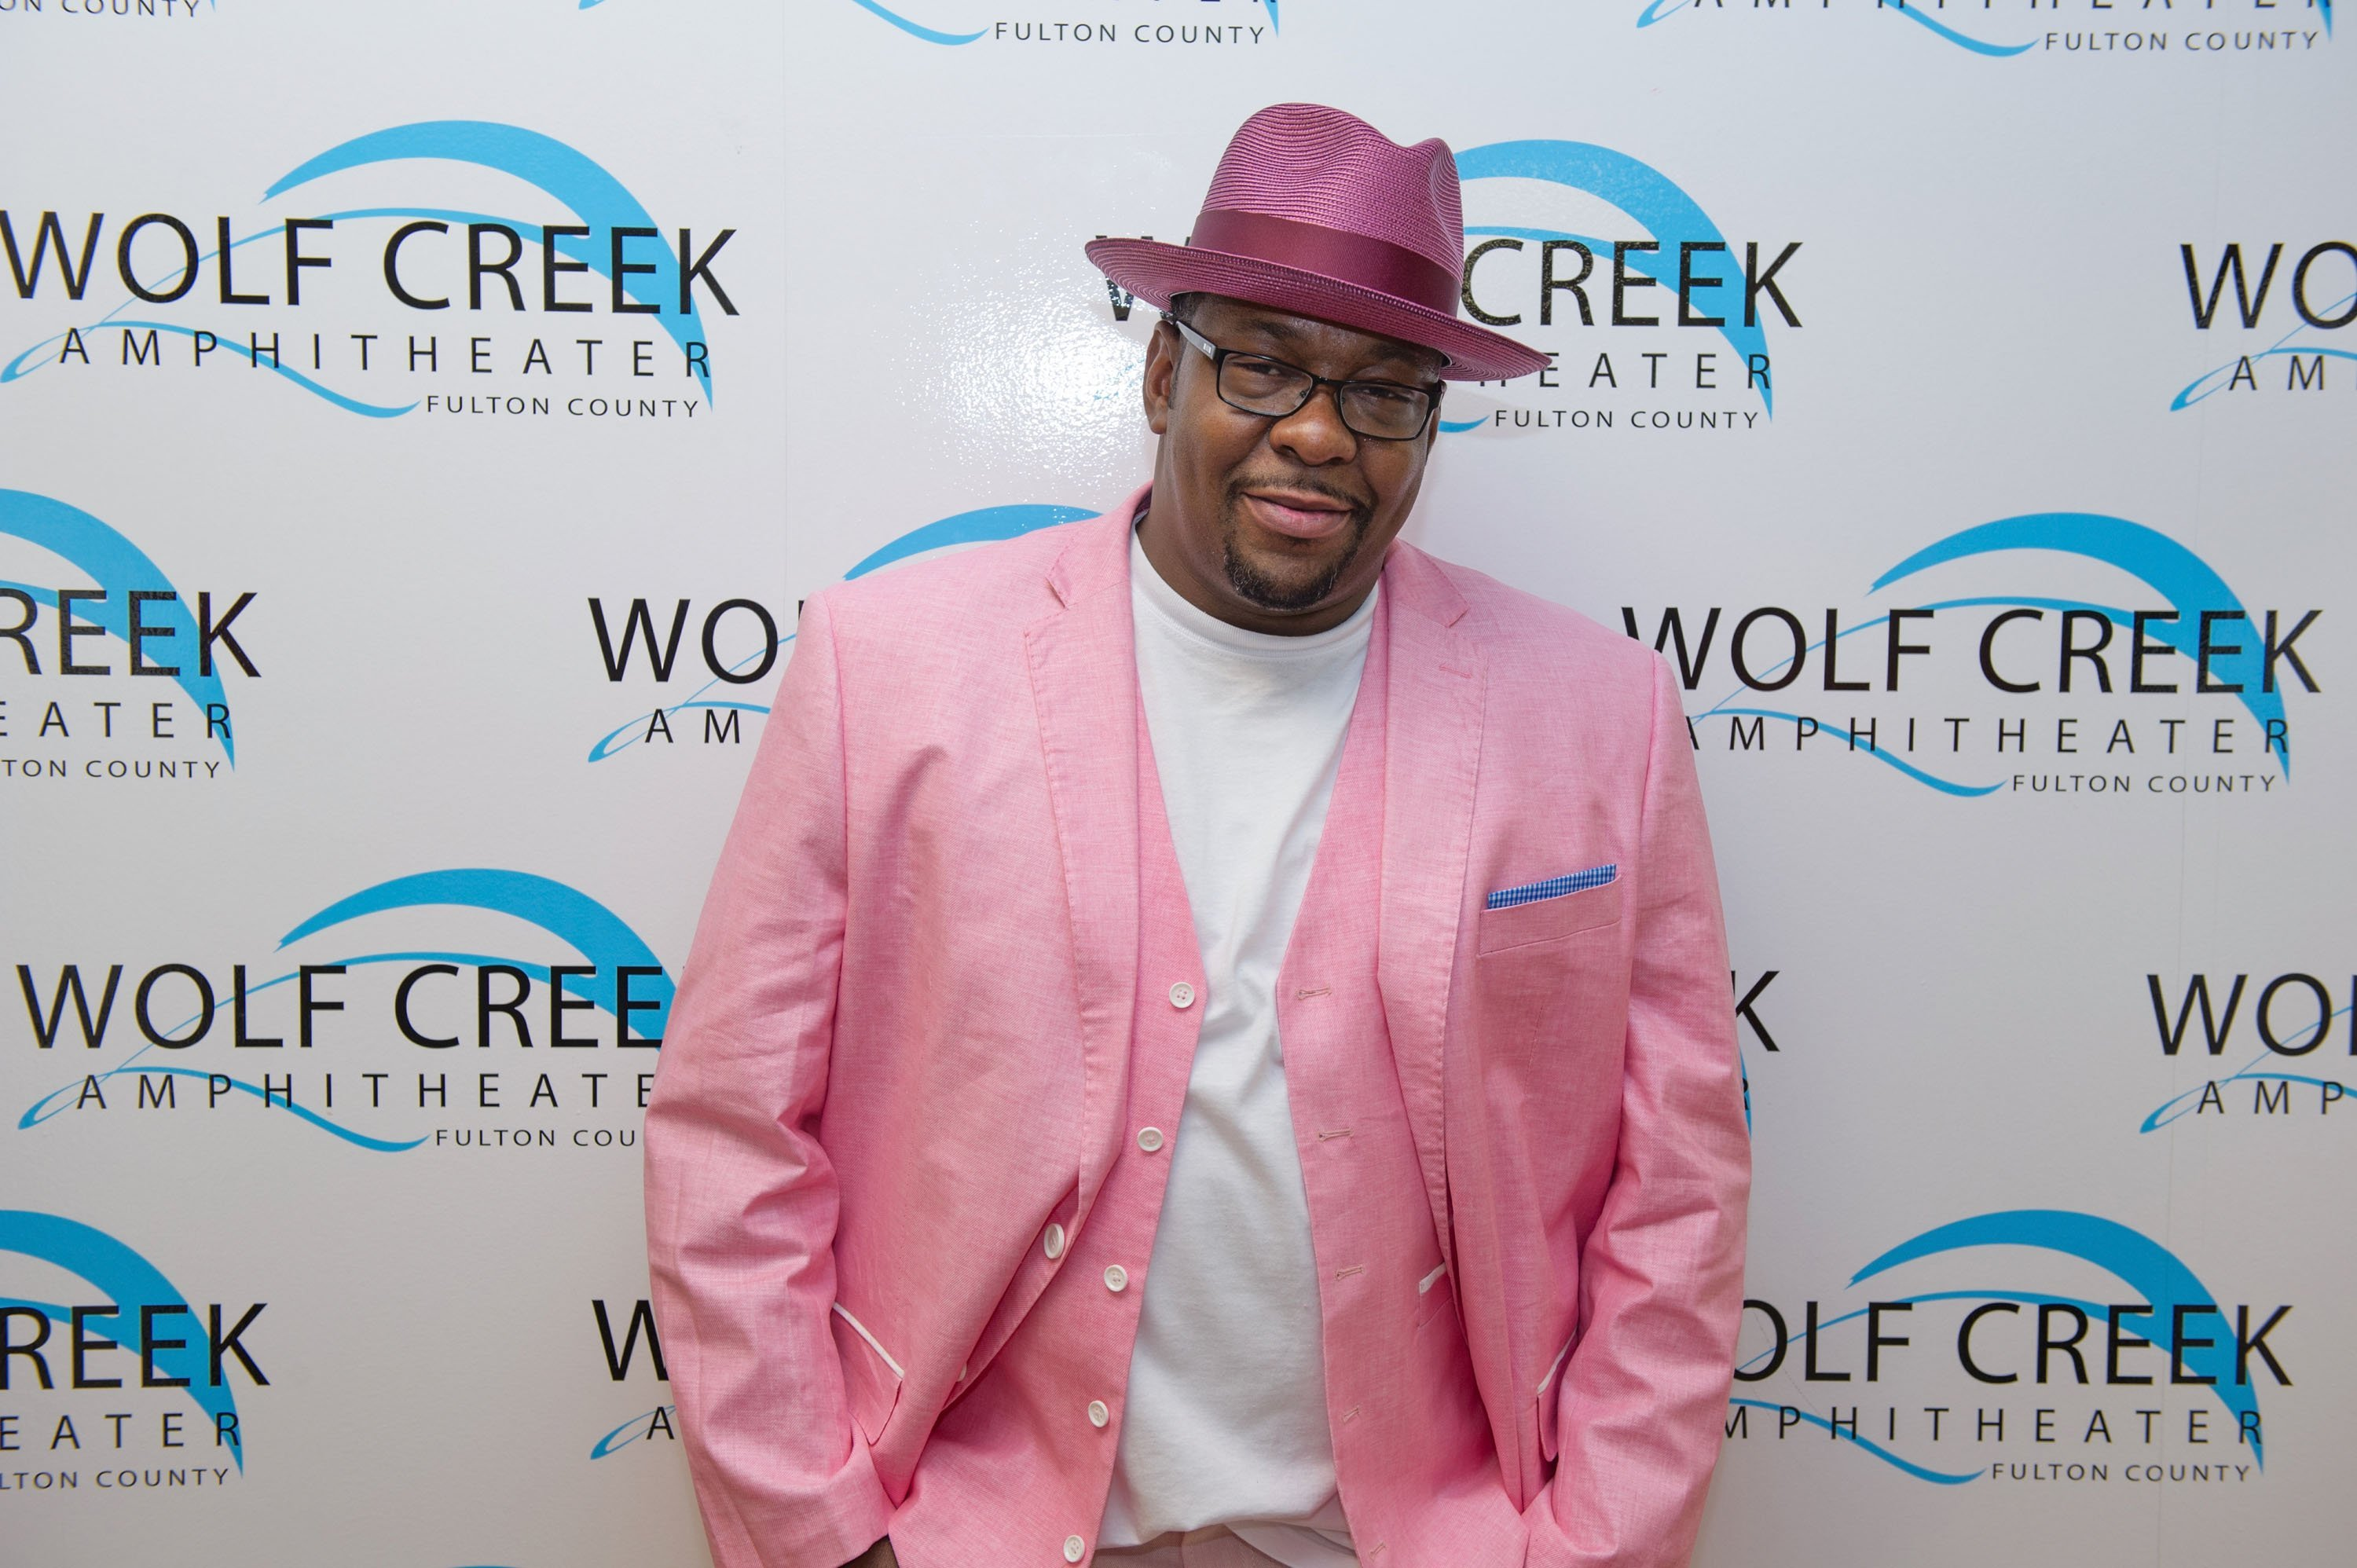 Bobby Brown at the Affordable Old School Concert Series on July 4, 2015 in Georgia | Photos: Getty Images